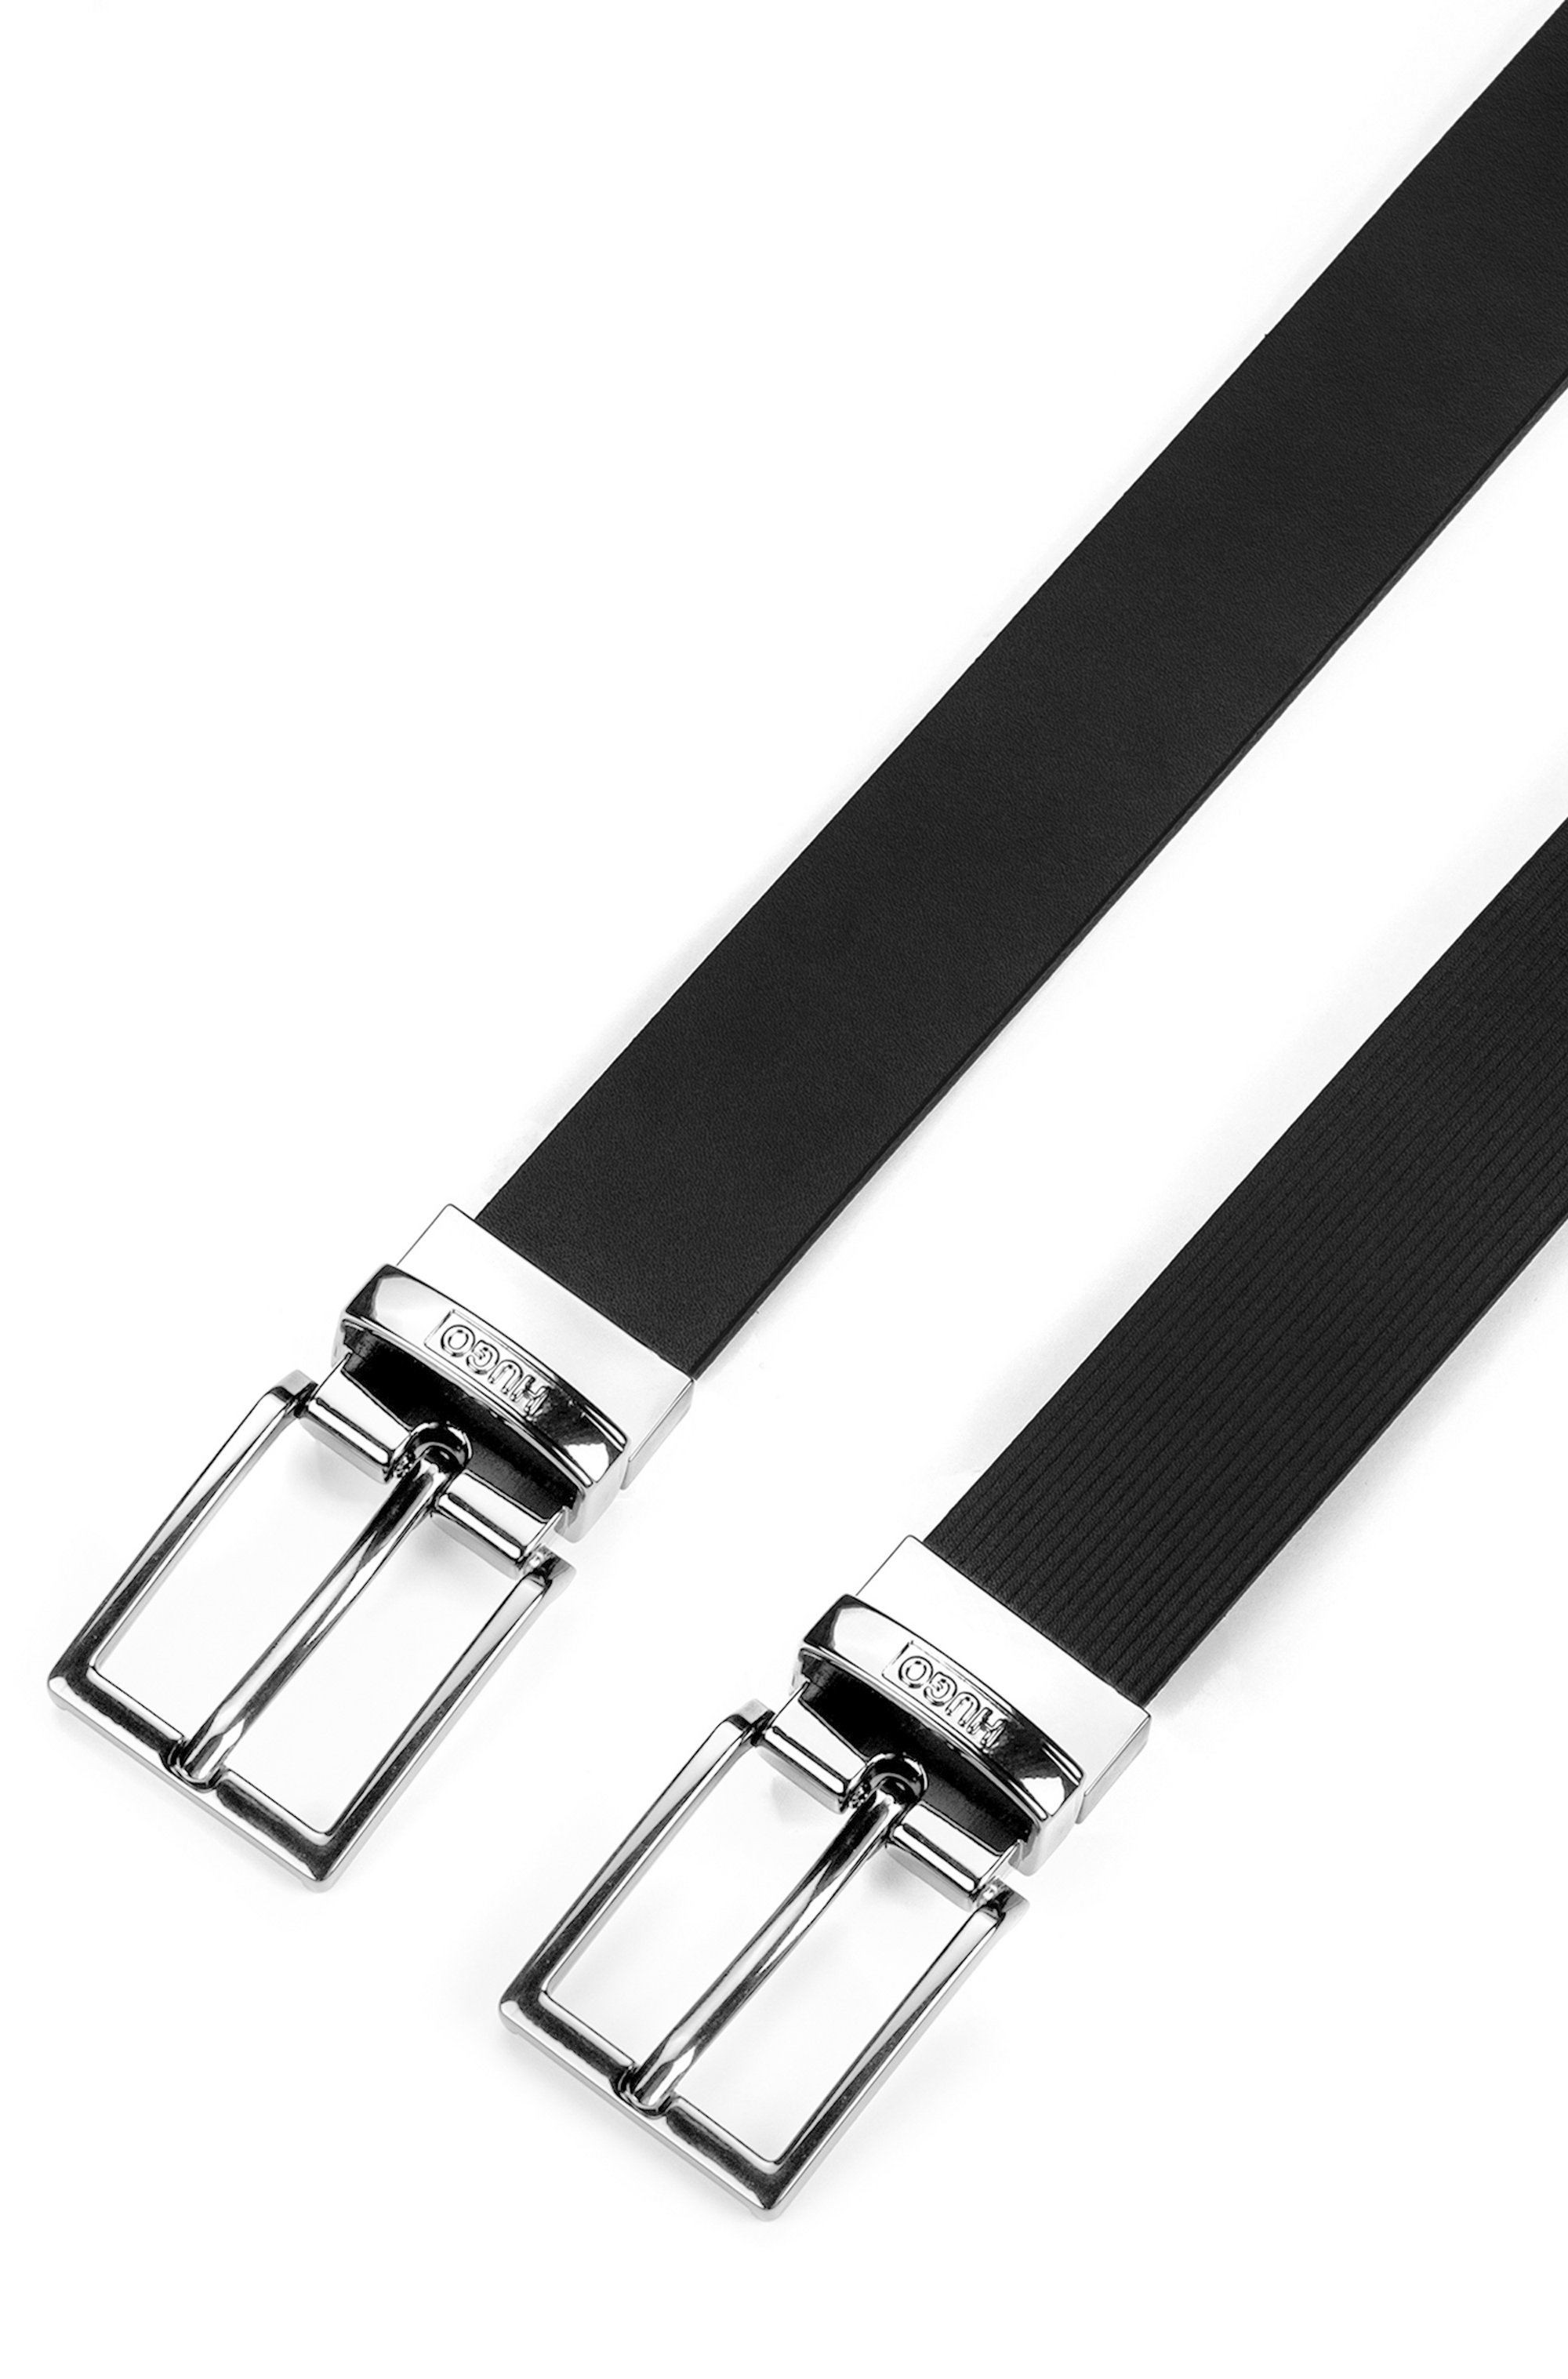 Italian-made reversible leather belt with plaque and buckle